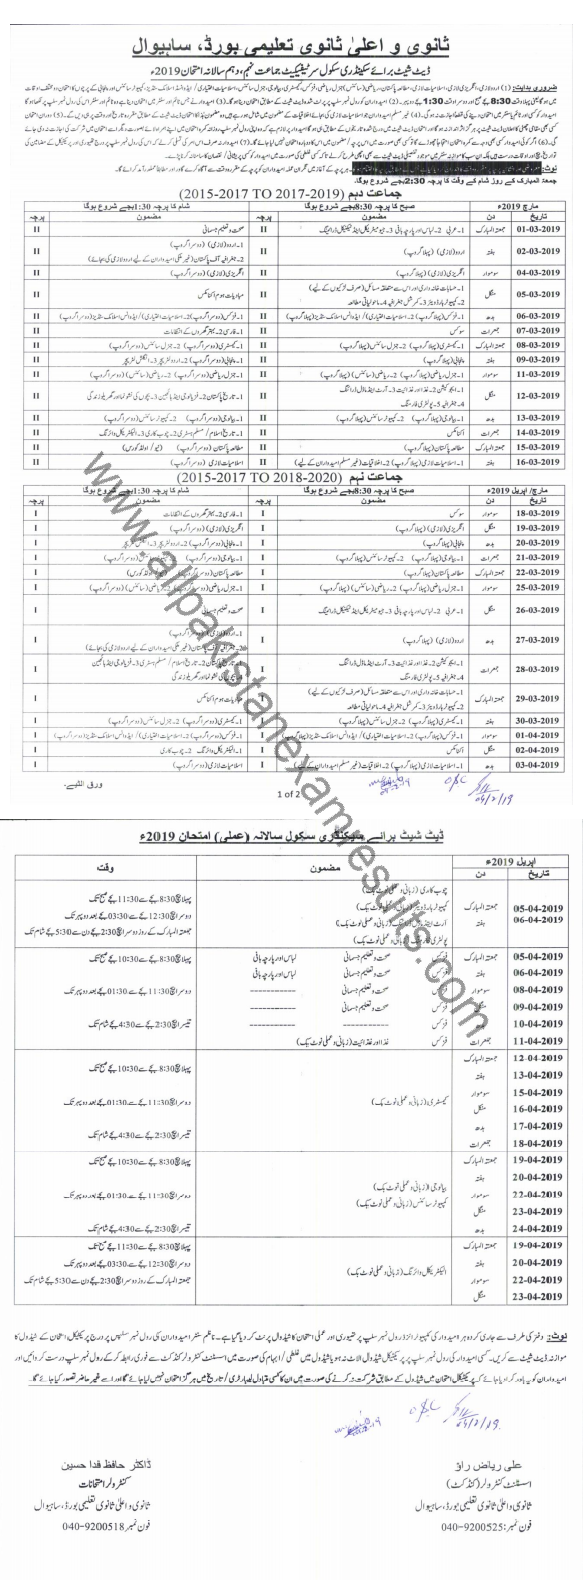 BISE Sahiwal 9th Class Date Sheet 2019